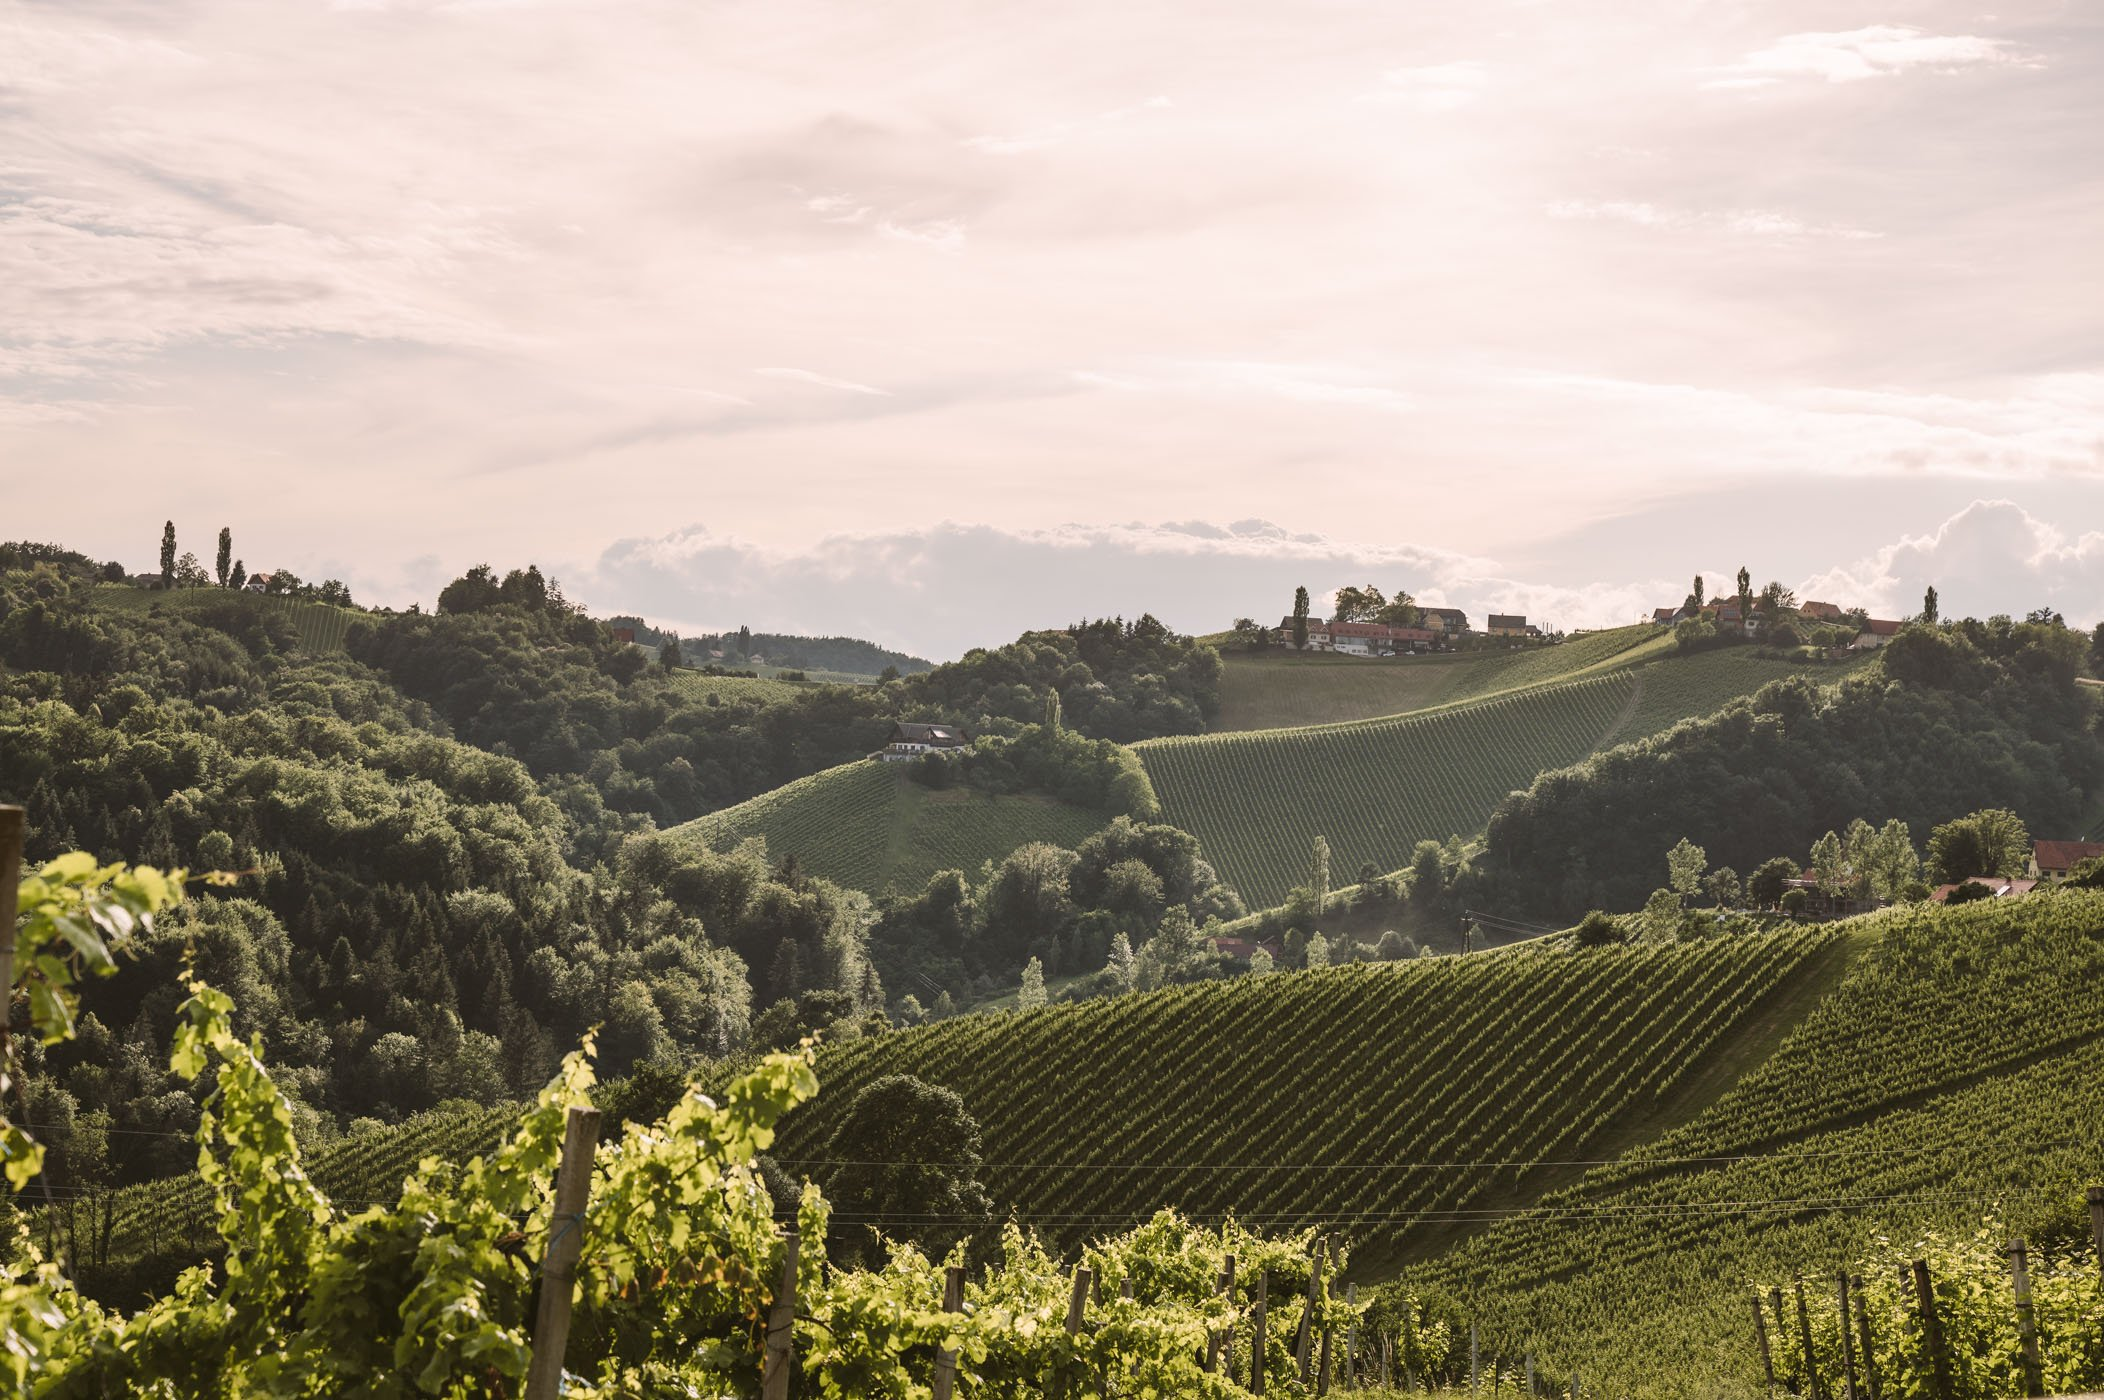 Southern Styria landscapes with rolling hills and vineyards